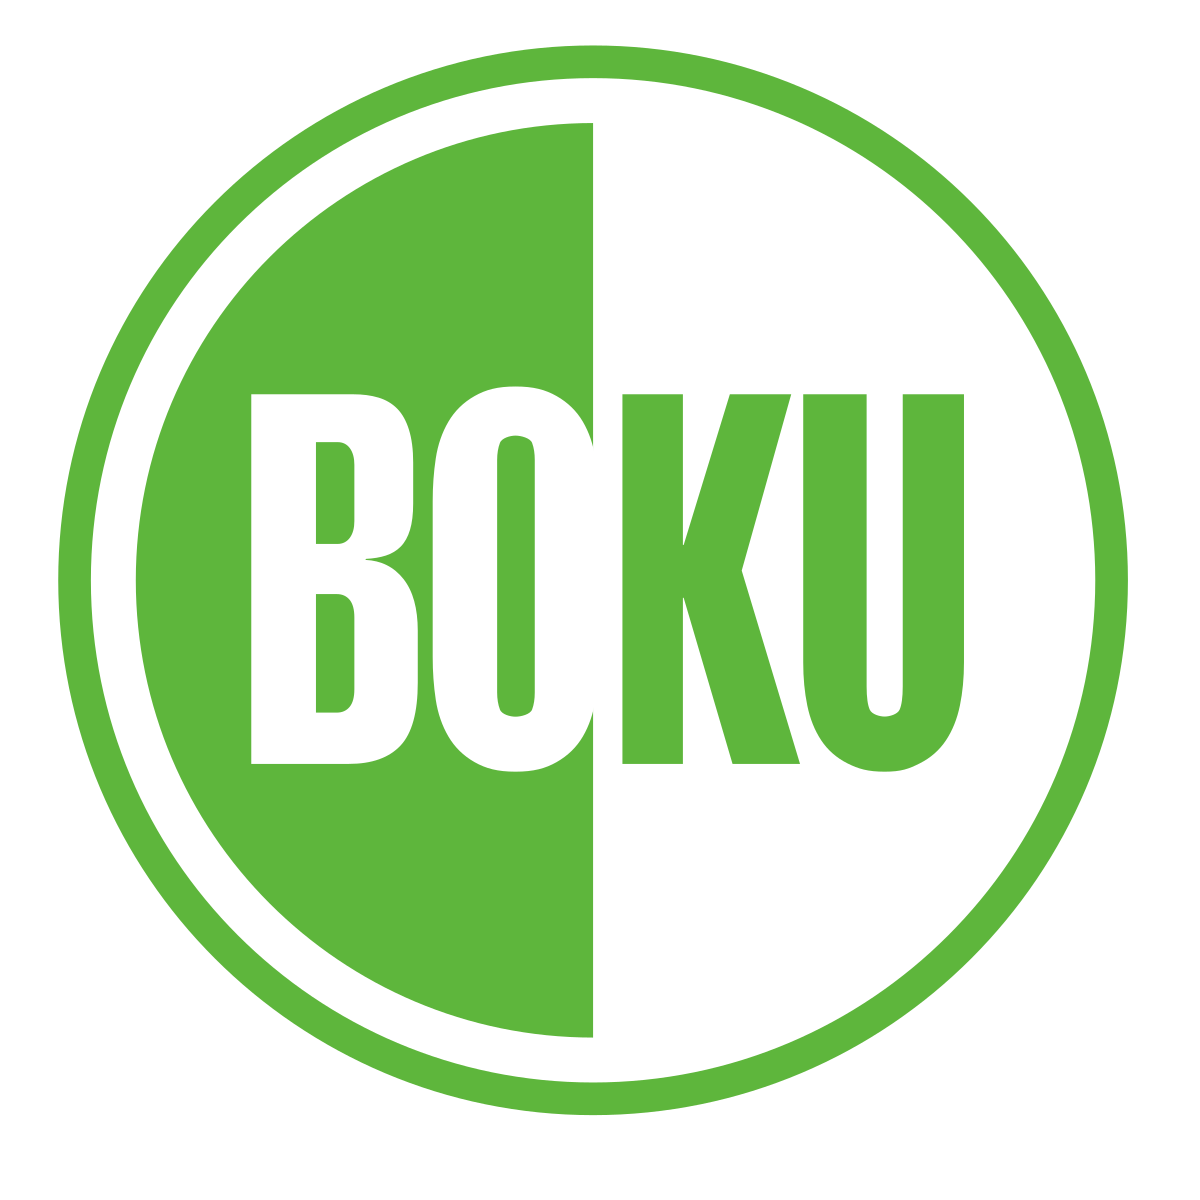 BOKU University of Natural Resources and Life Sciences